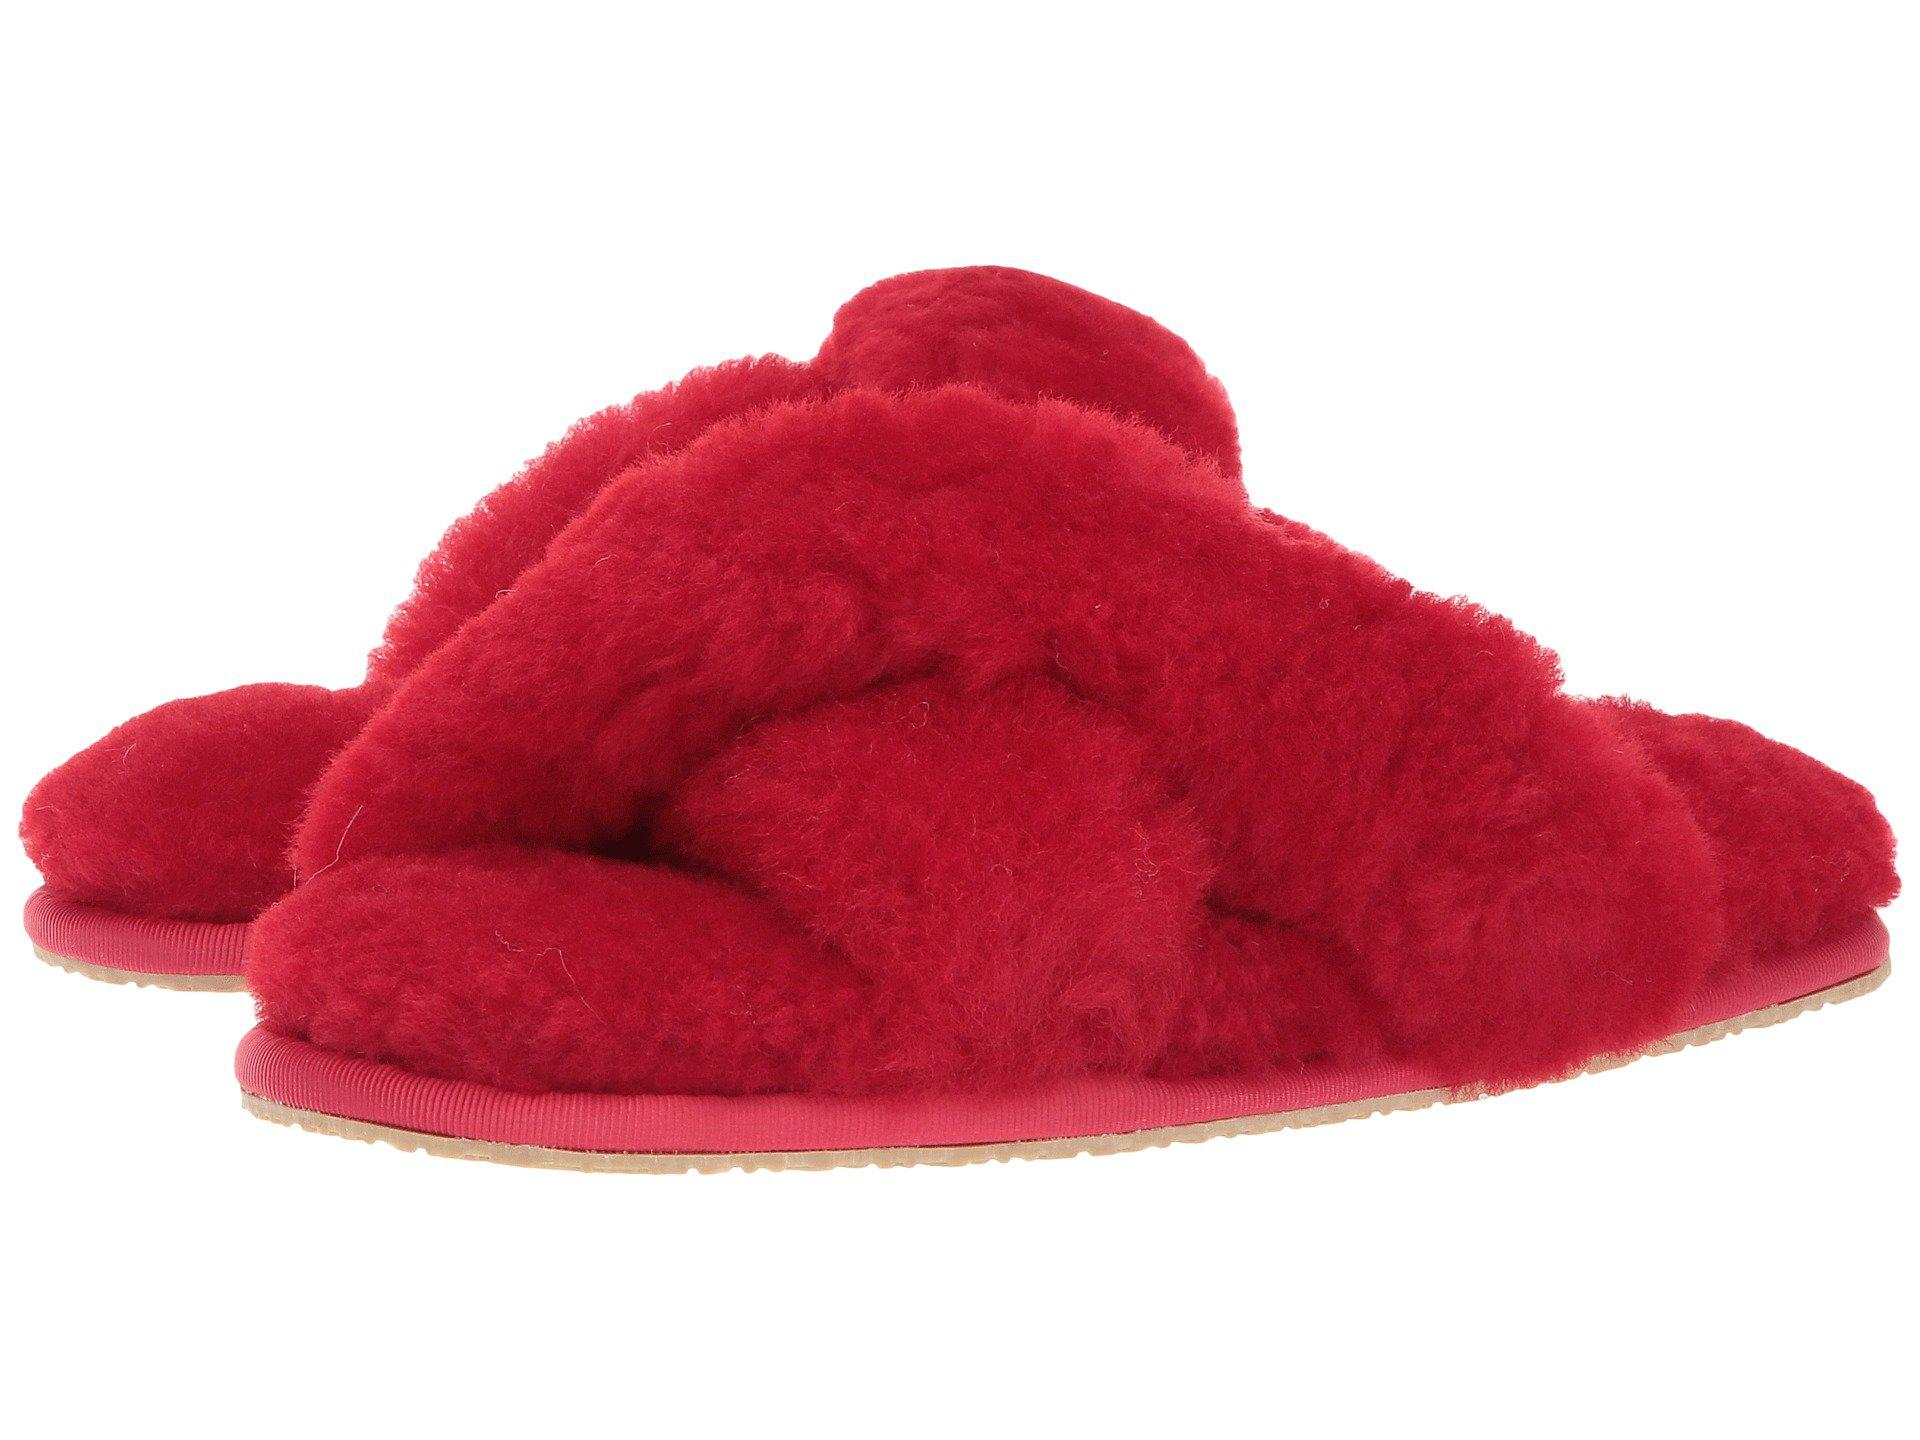 bb580d5b7d8 Lyst - Patricia Green Mt. Hood (ivory) Women s Slippers in Red - Save 1%